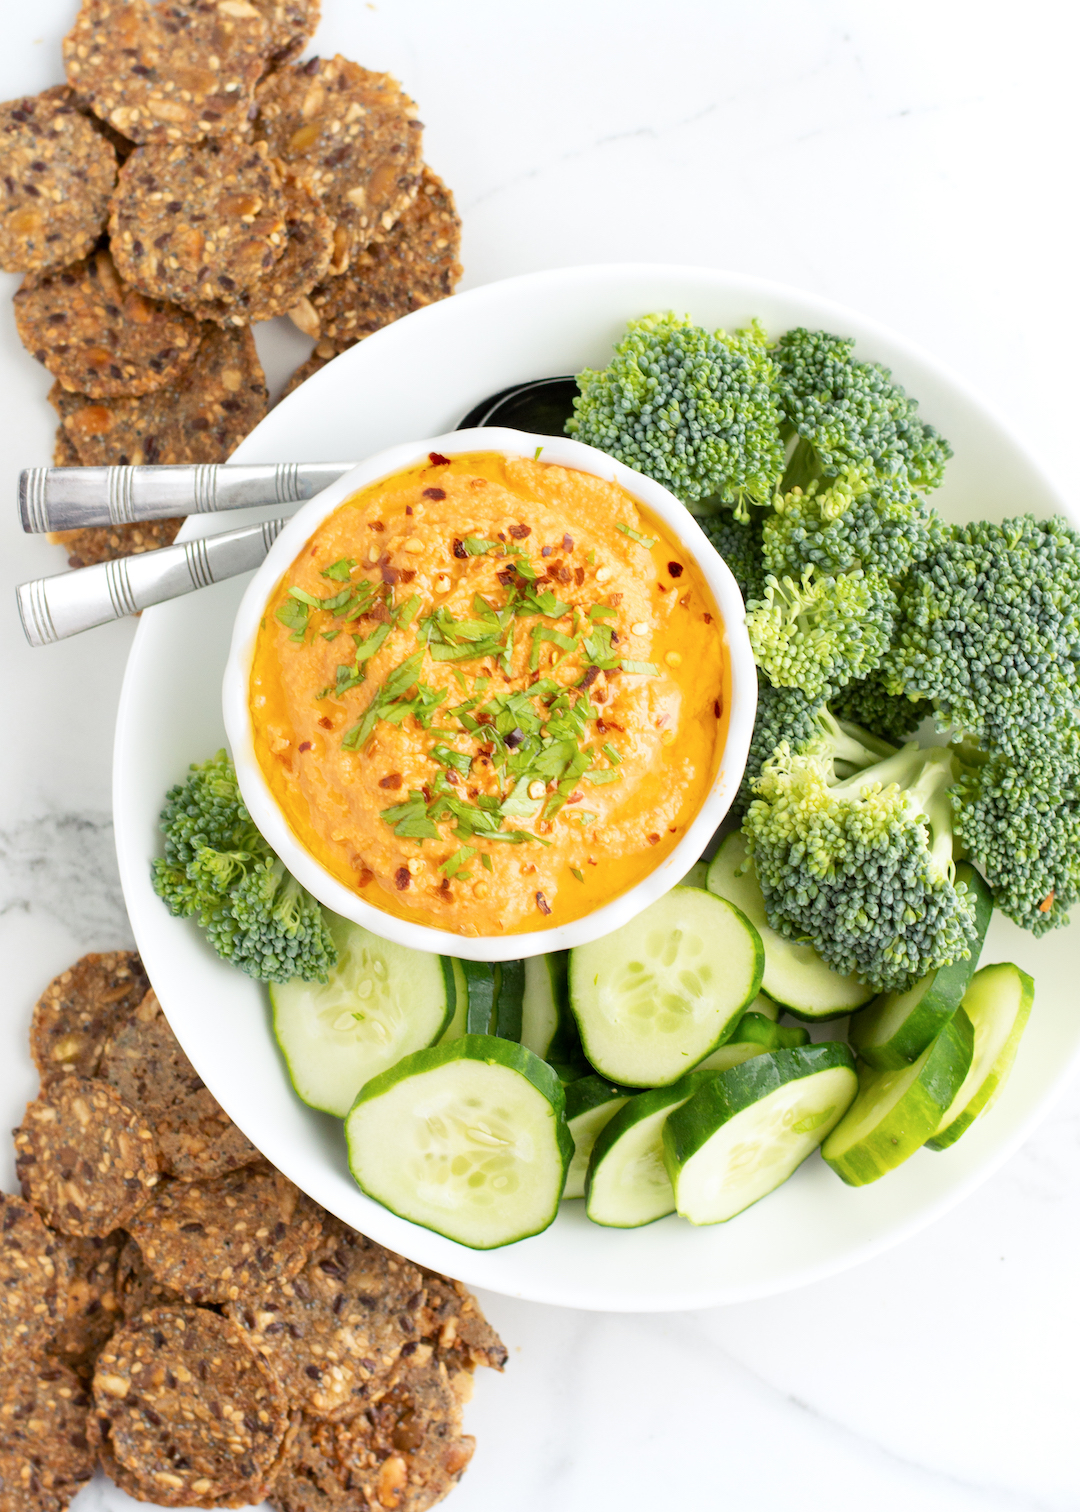 Homemade Roasted Red Pepper Hummus is the best healthy afternoon snack. Loaded with red peppers, chickpeas, tahini, lemon juice and garlic this clean eating recipe is delicious served with veggies and crackers.